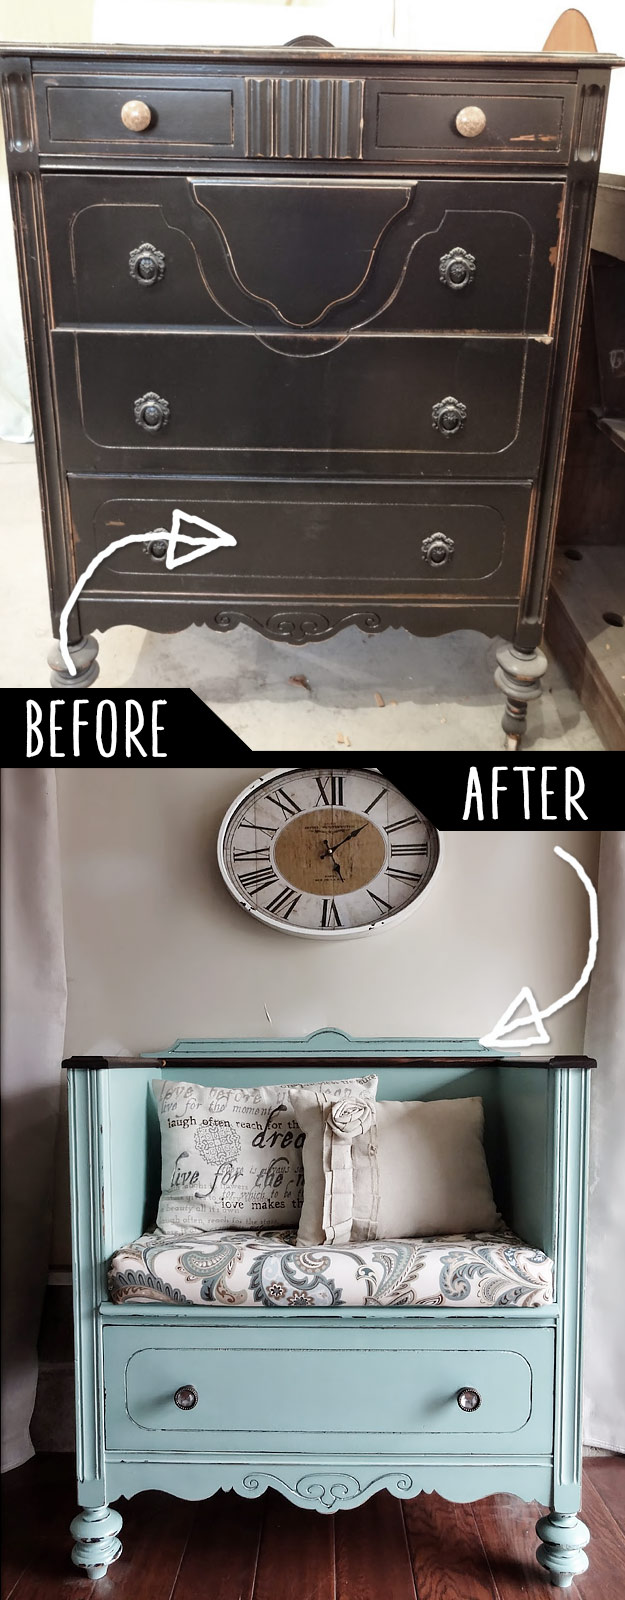 Turn That Unused Room Of The House Into This: 39 Clever DIY Furniture Hacks